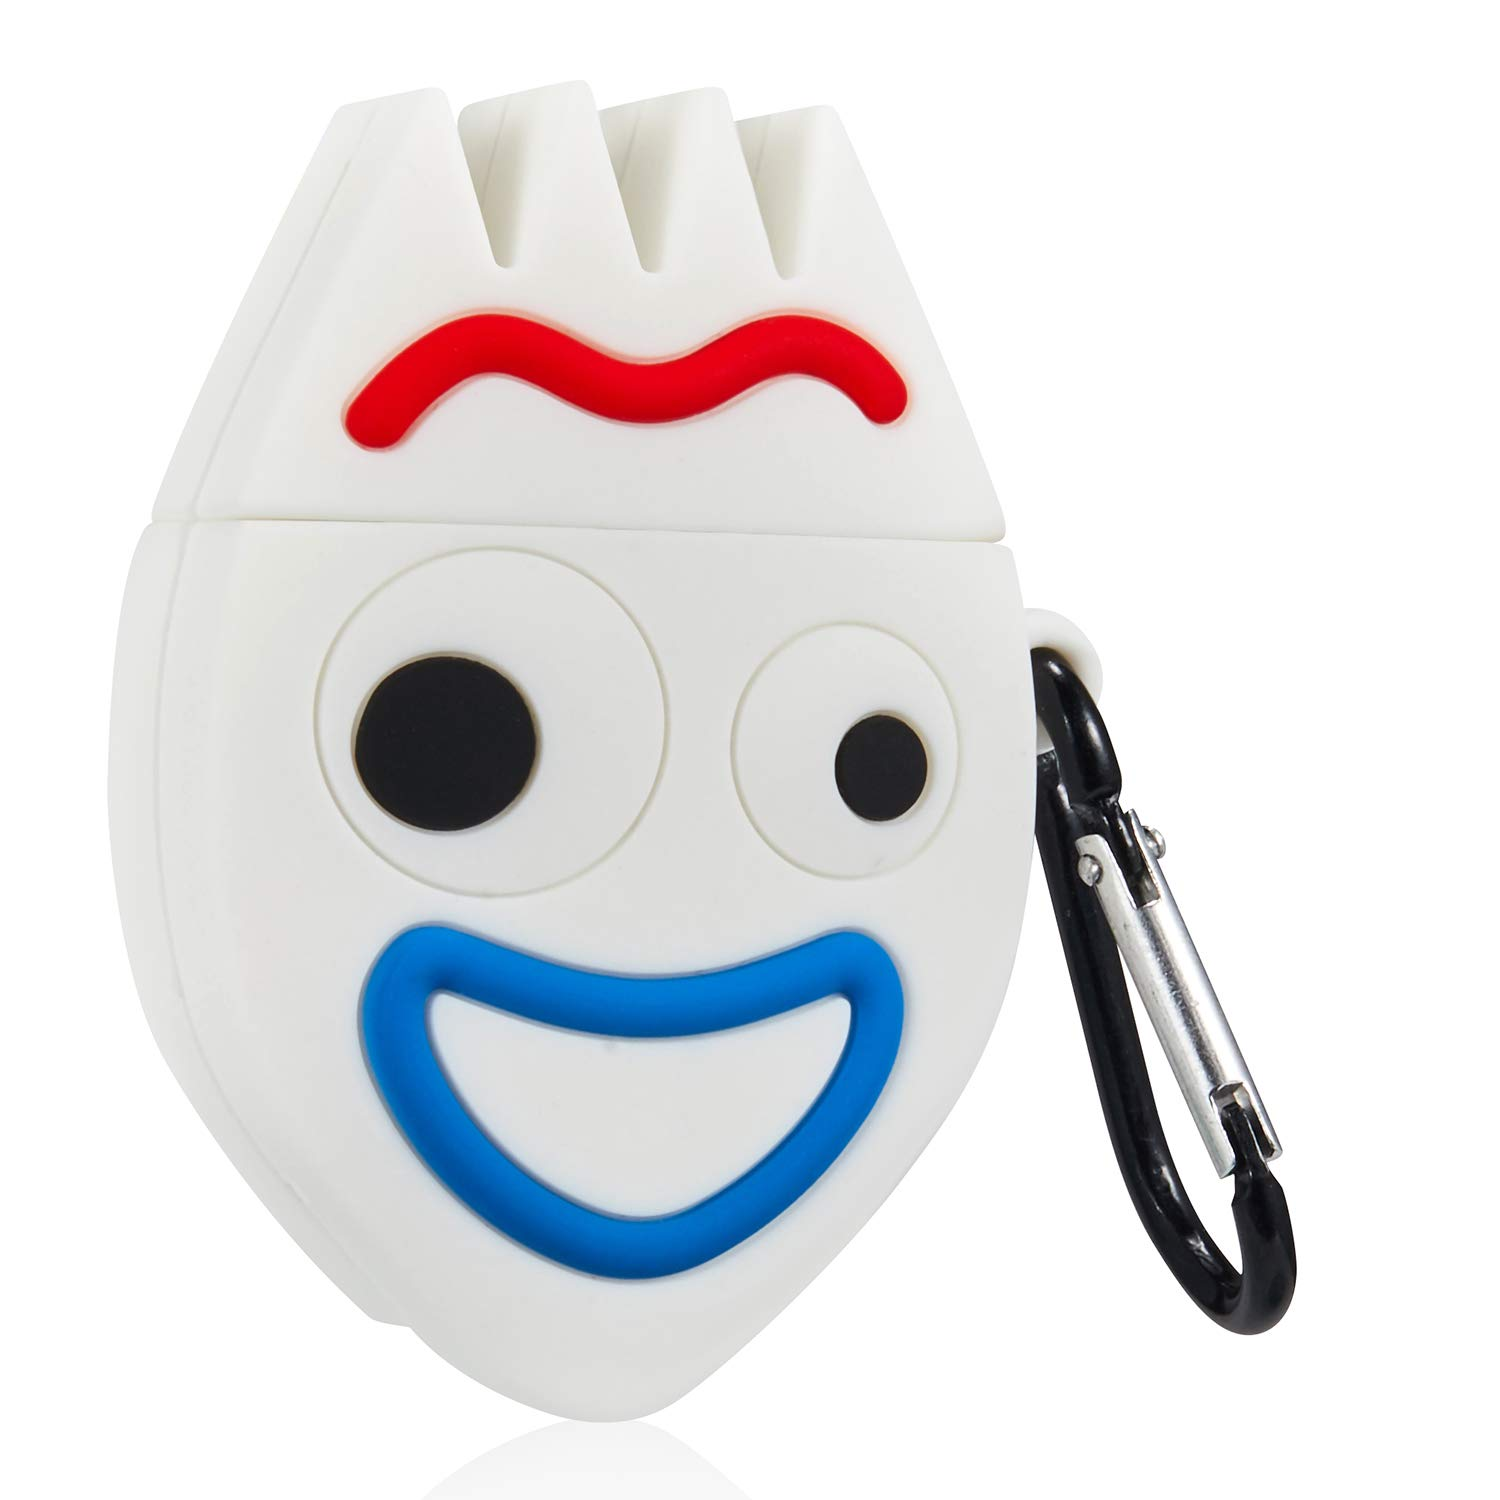 Gift-Hero Happy Fork Cartoon Case for Airpods, Cute Funny Cool Pattern Design for Girls Boys Kids, Accessories Carabiner Protective Fun Fashion Character Skin Soft Silicone Cover for Air pods 2/1